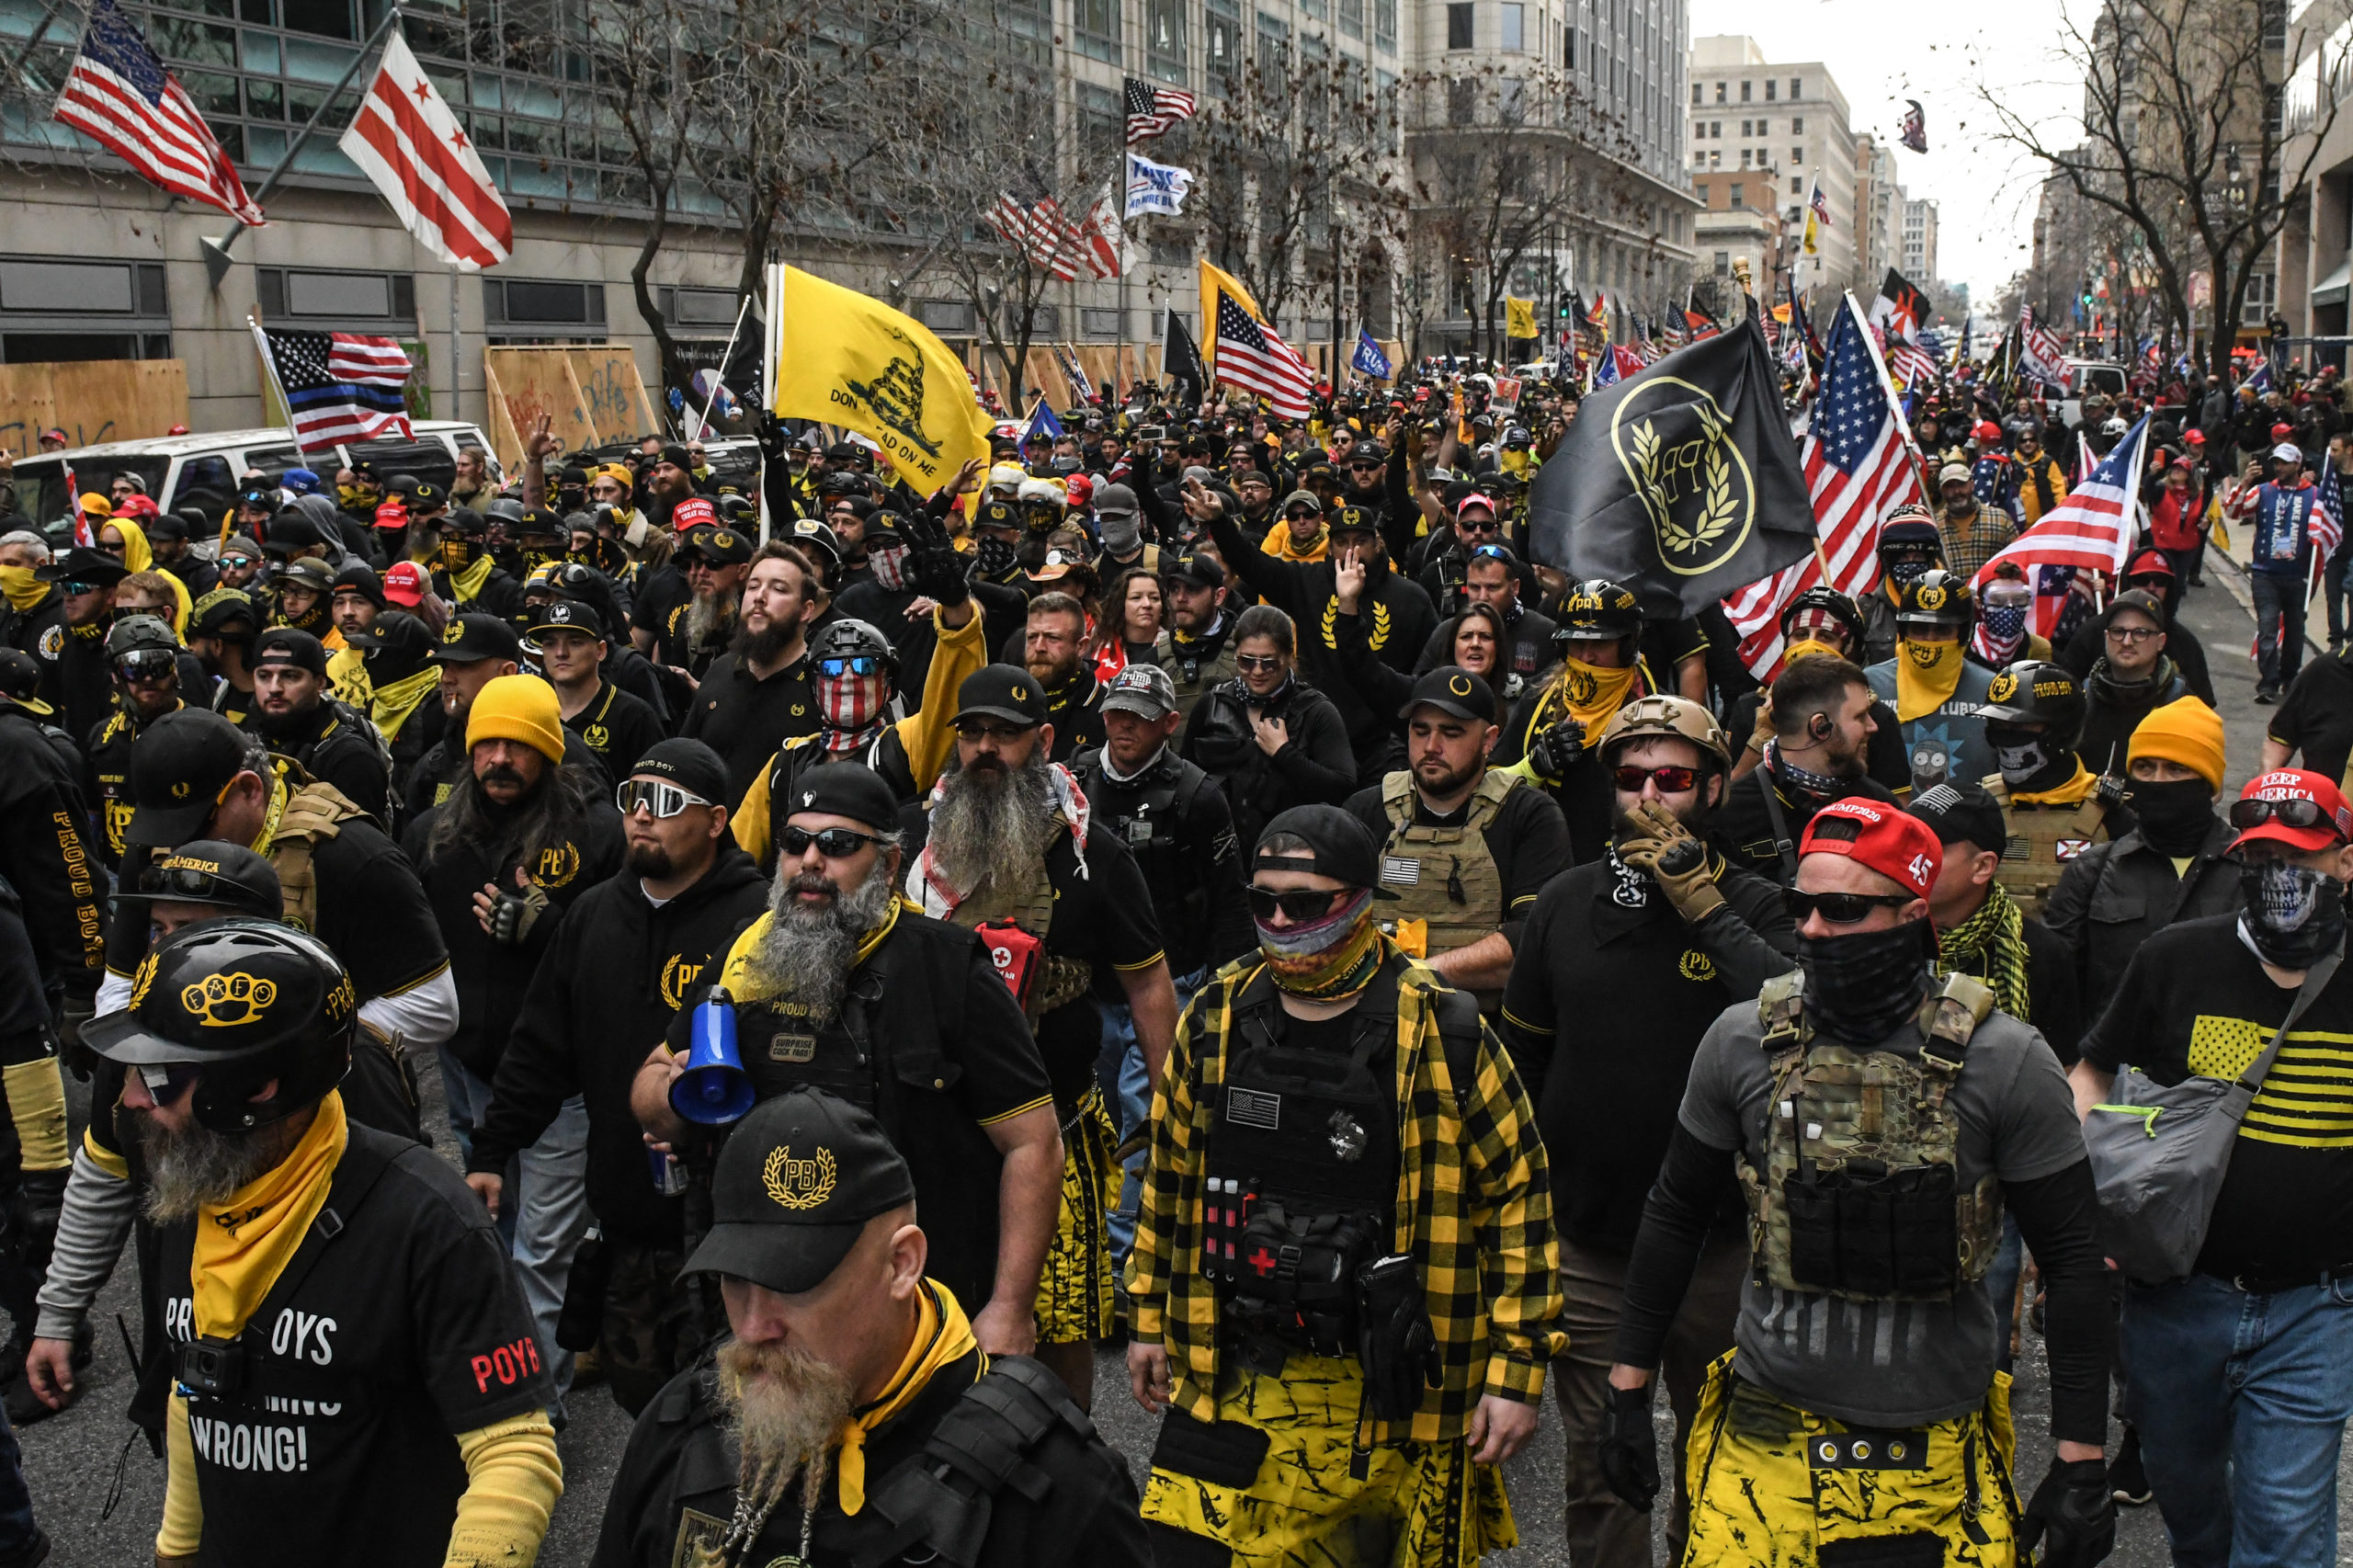 Members of the Proud Boys march towards Freedom Plaza during a protest on December 12, 2020 in Washington, DC. Thousands of protesters who refuse to accept that President-elect Joe Biden won the election are rallying ahead of the electoral college vote to make Trump's 306-to-232 loss official. (Photo by Stephanie Keith/Getty Images)